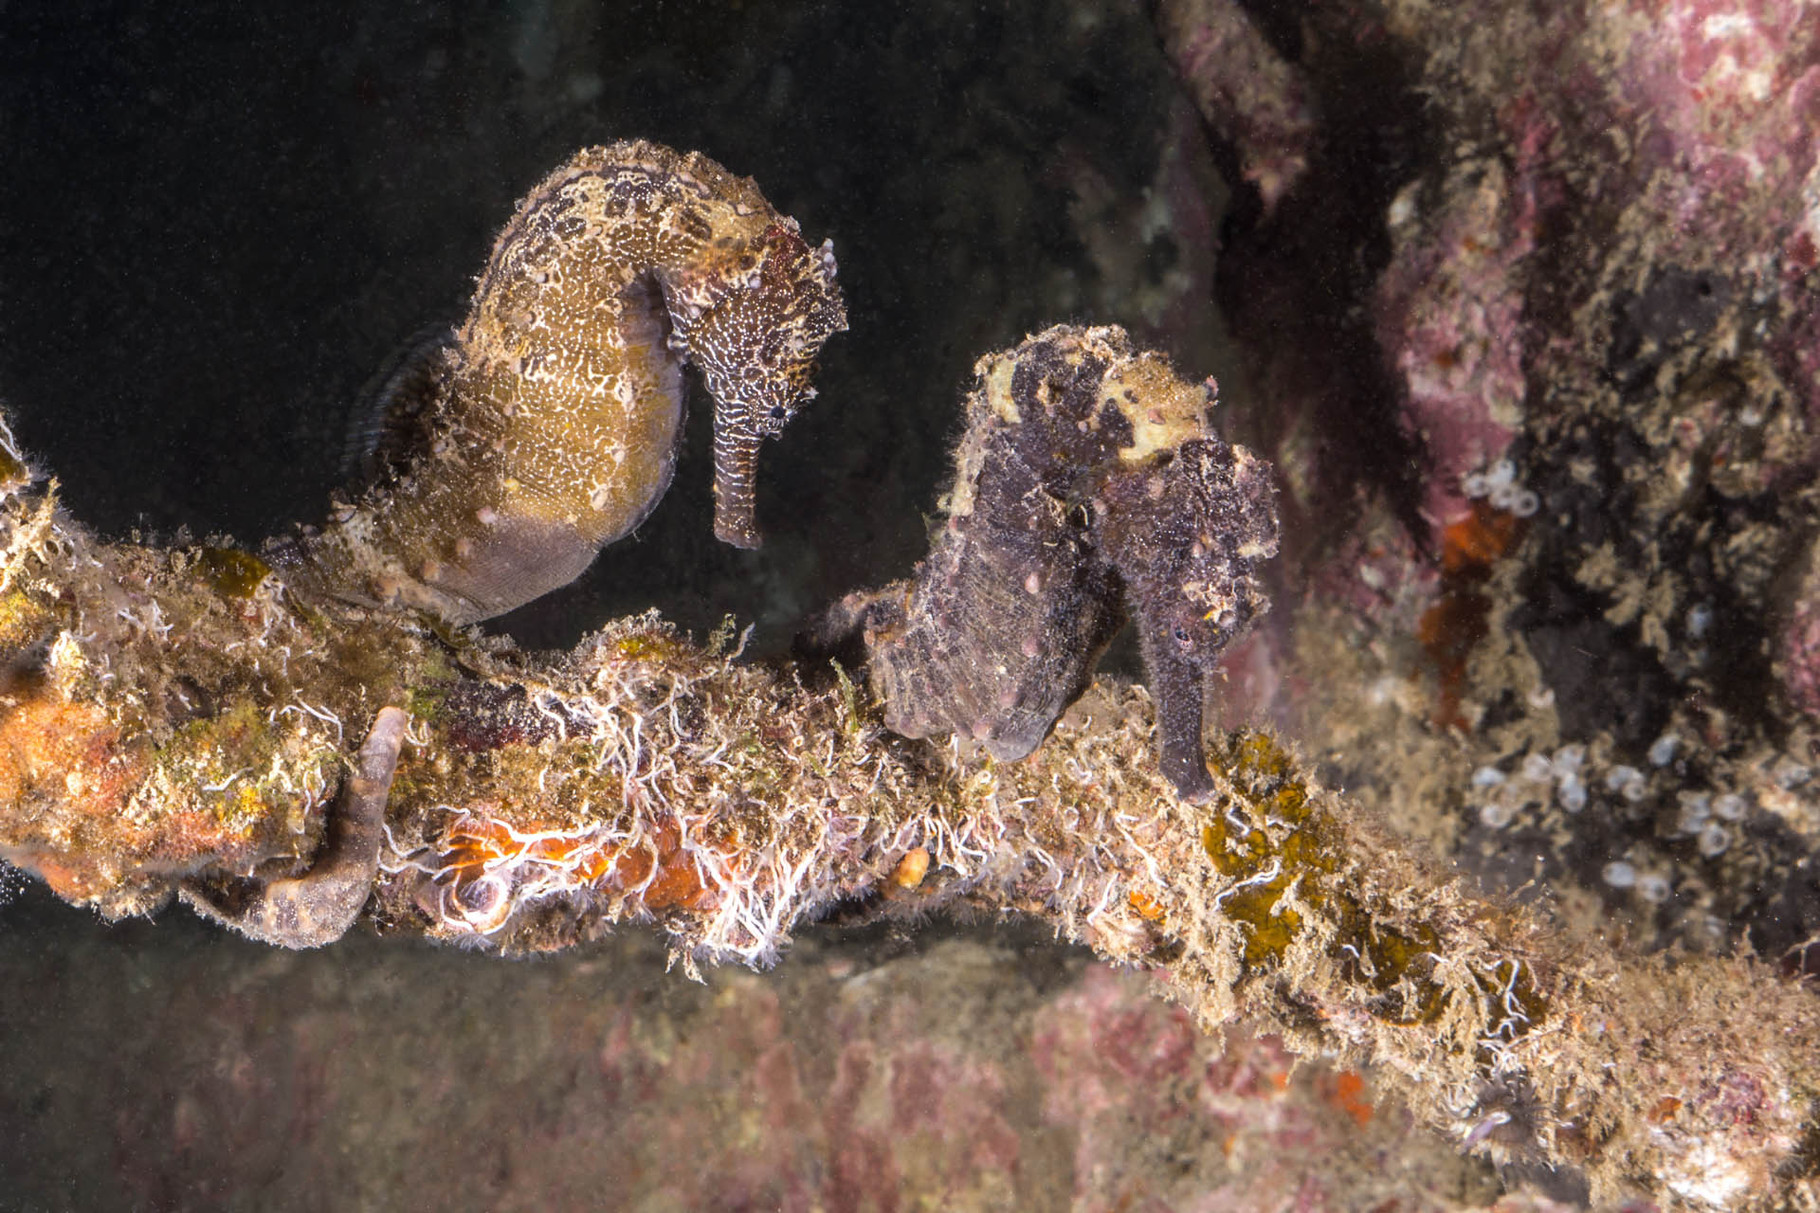 Two zebra-snout seahorses (Hippocampus barbouri), Padre Burgos [Philippines, 2015]